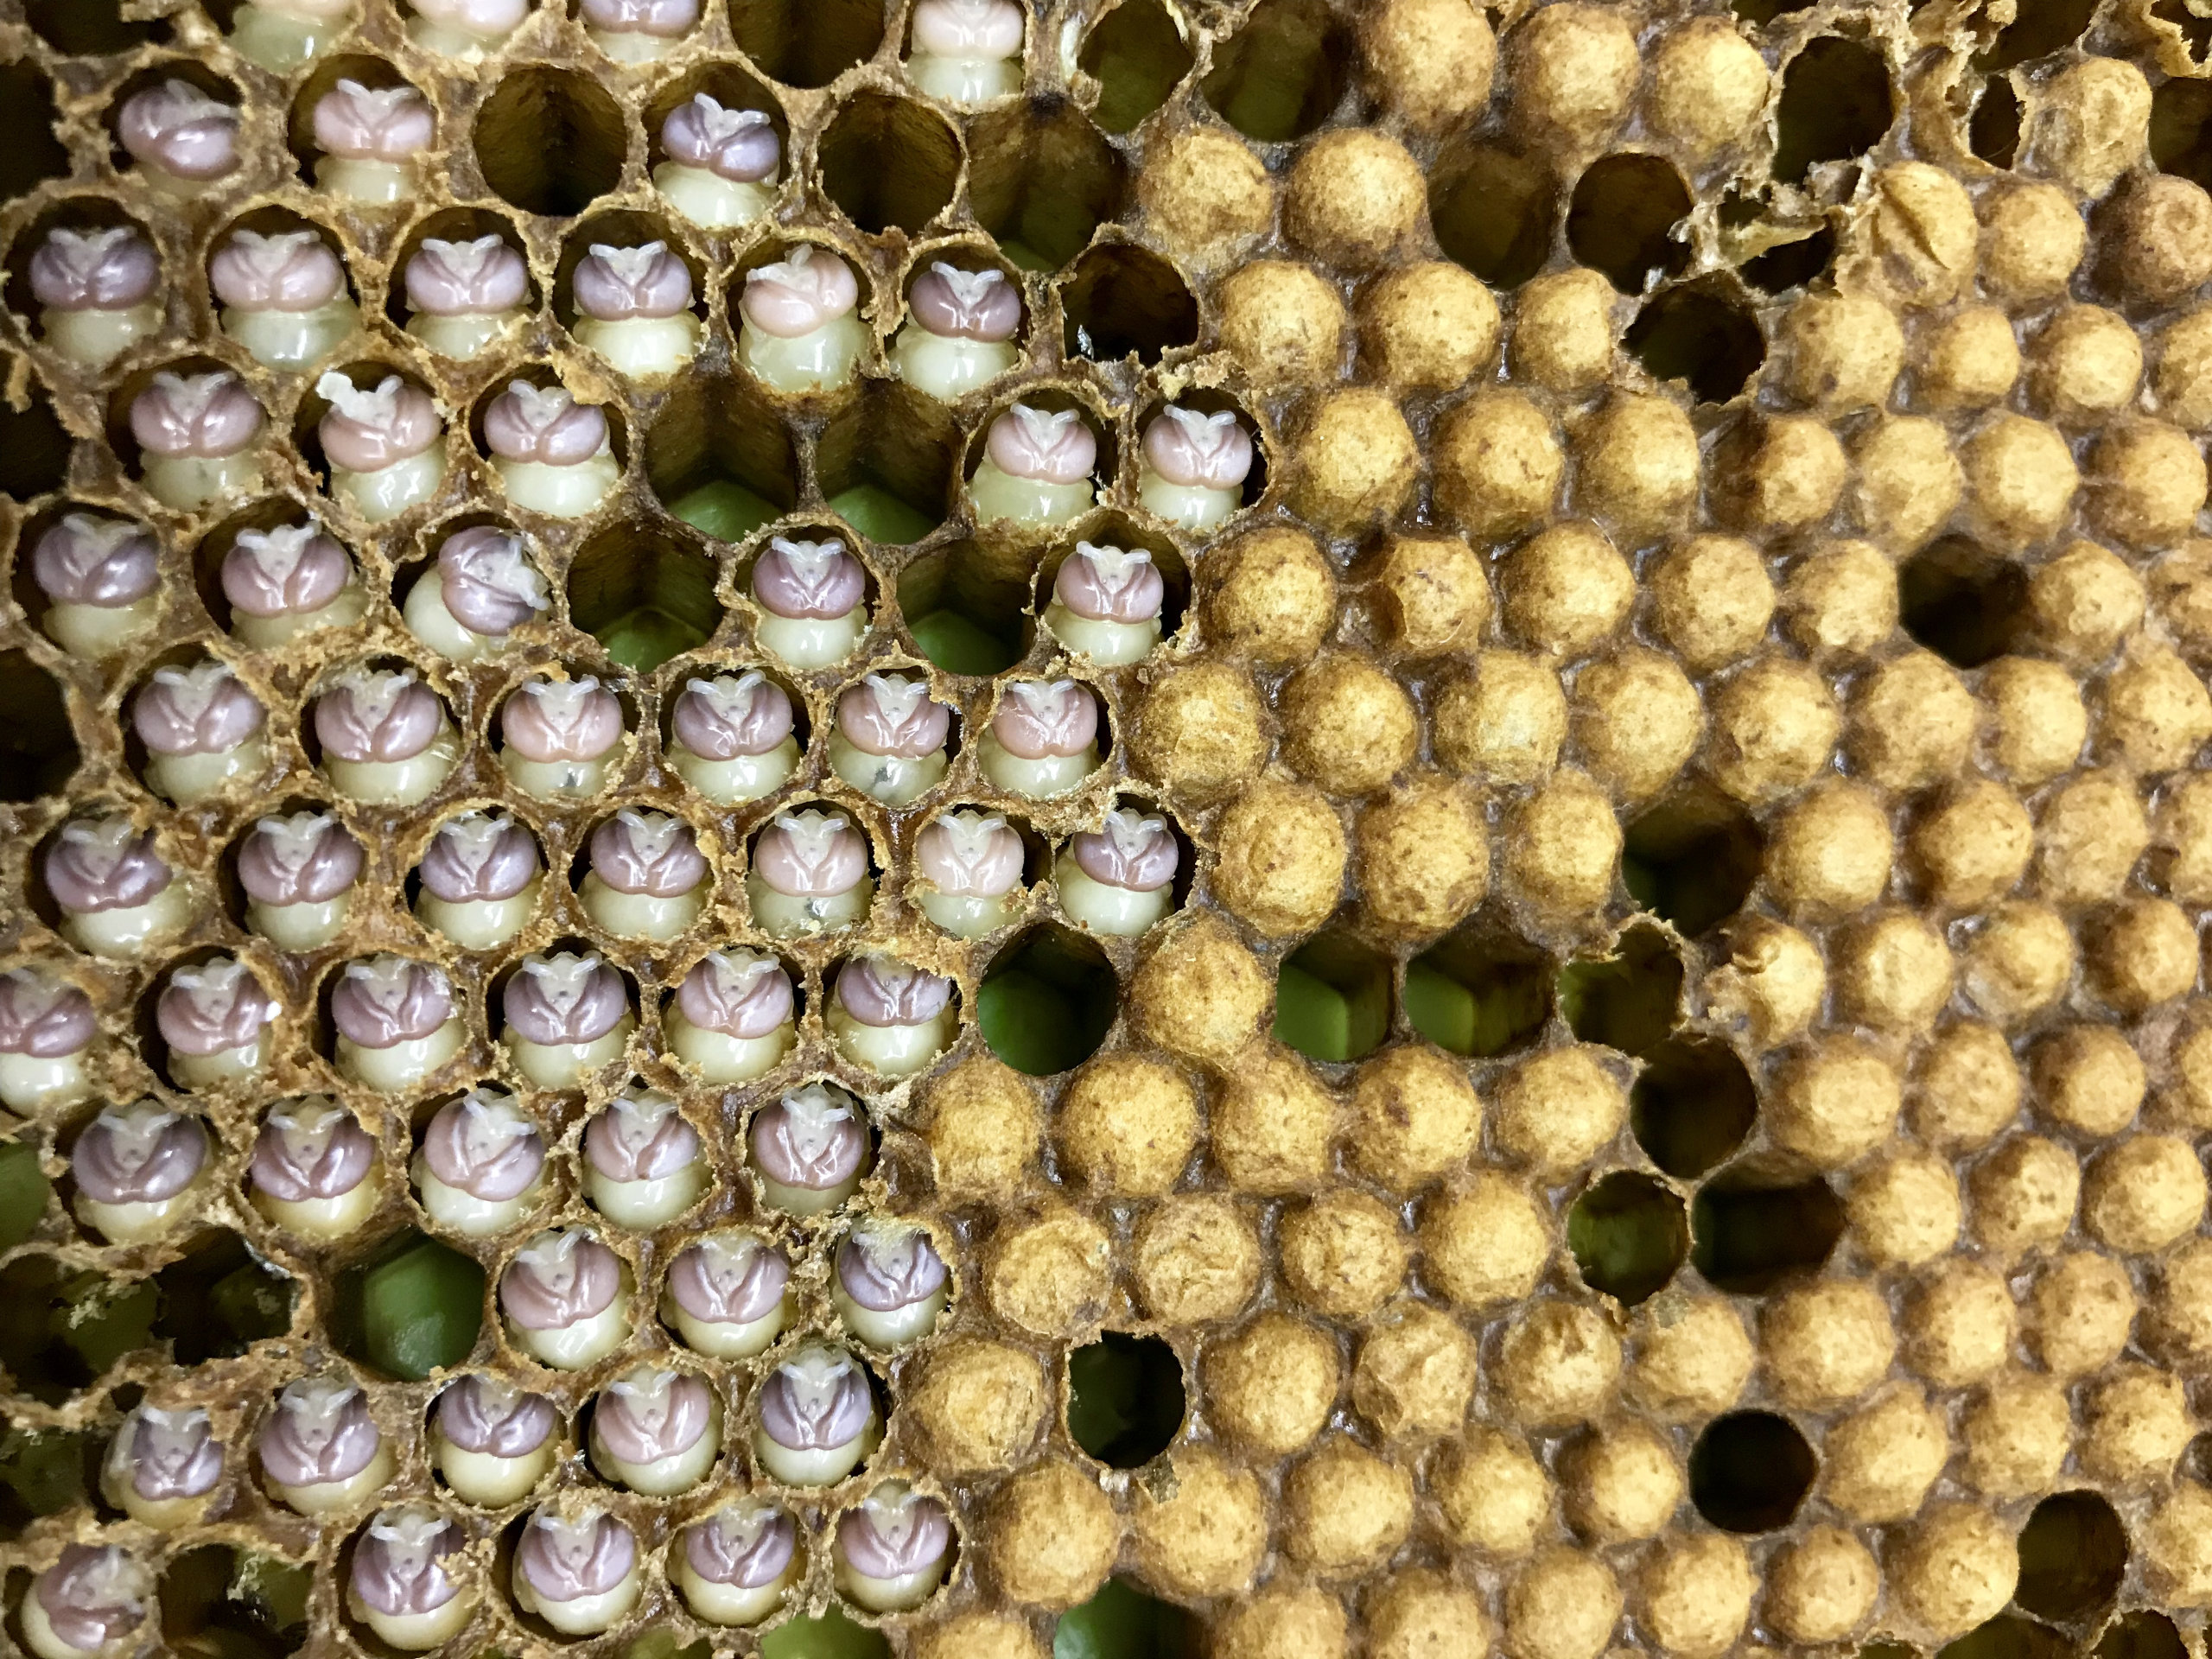 Honeybee drone pupae uncapped in the hive.